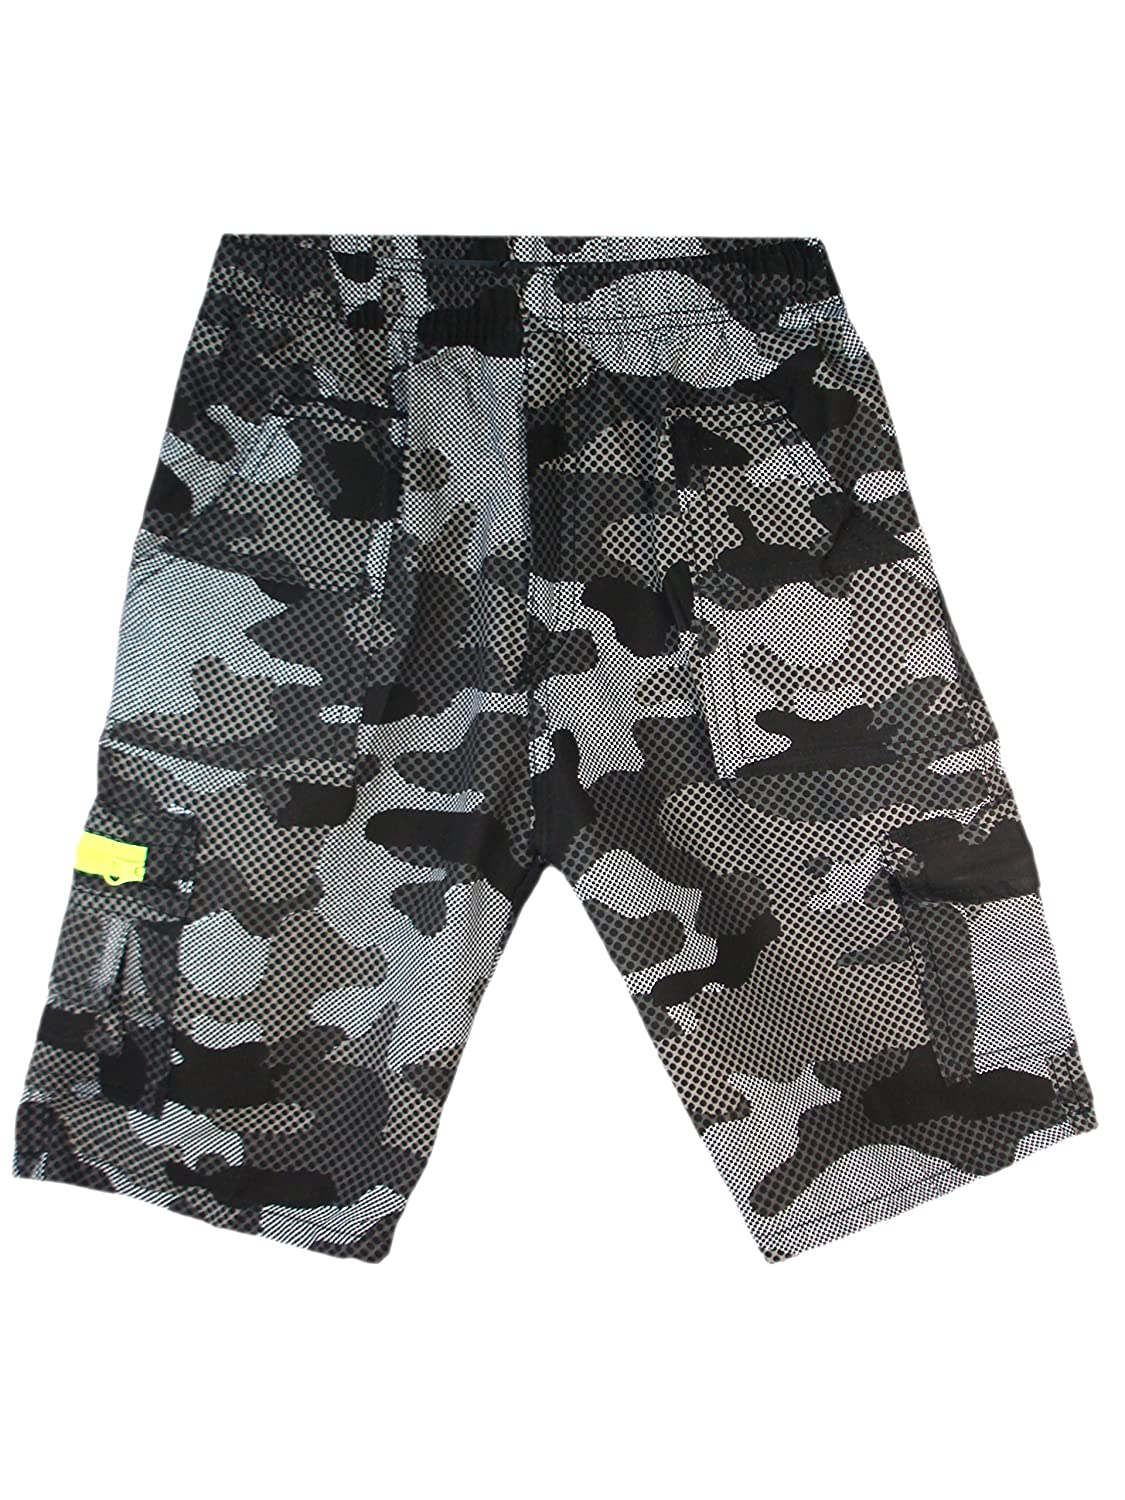 Charcoal Camouflage 156